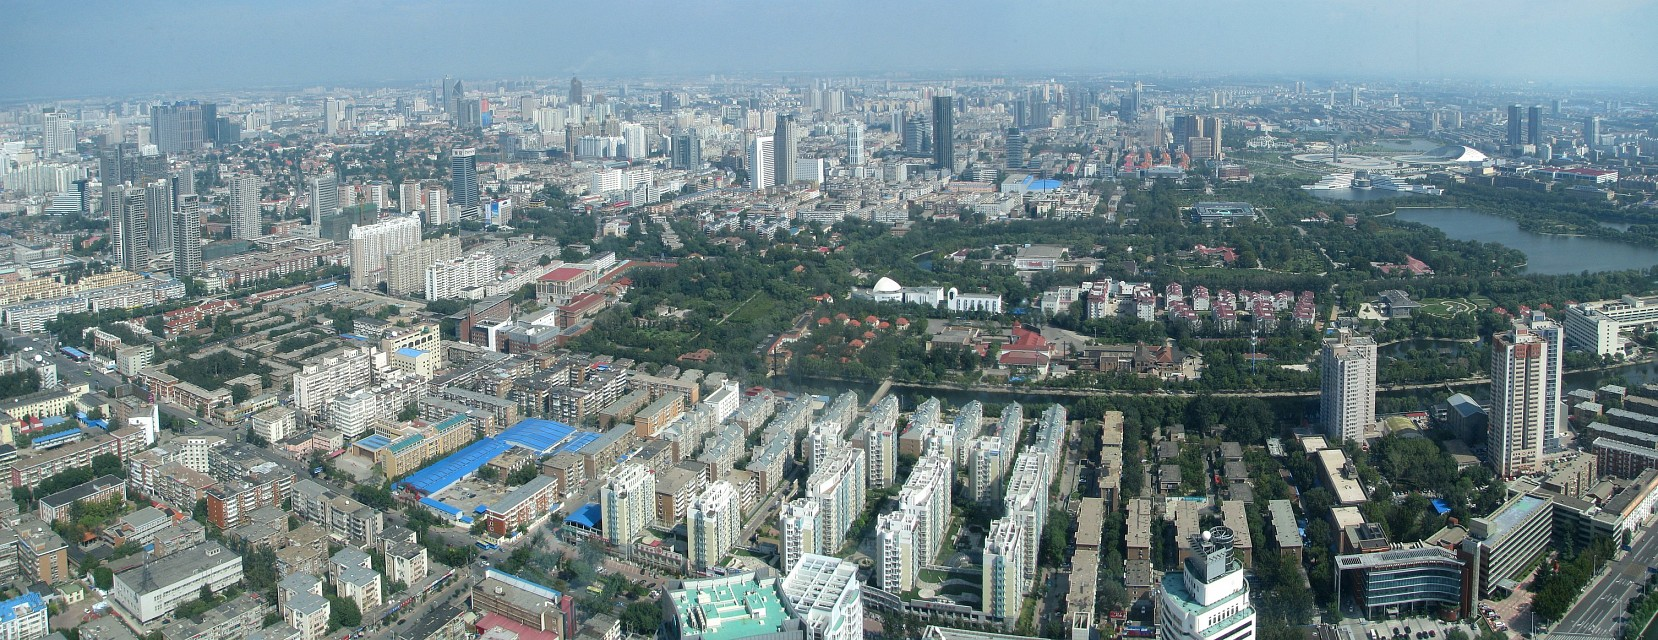 Tianjin from Tianjin Radio and Television Tower - Tianjin